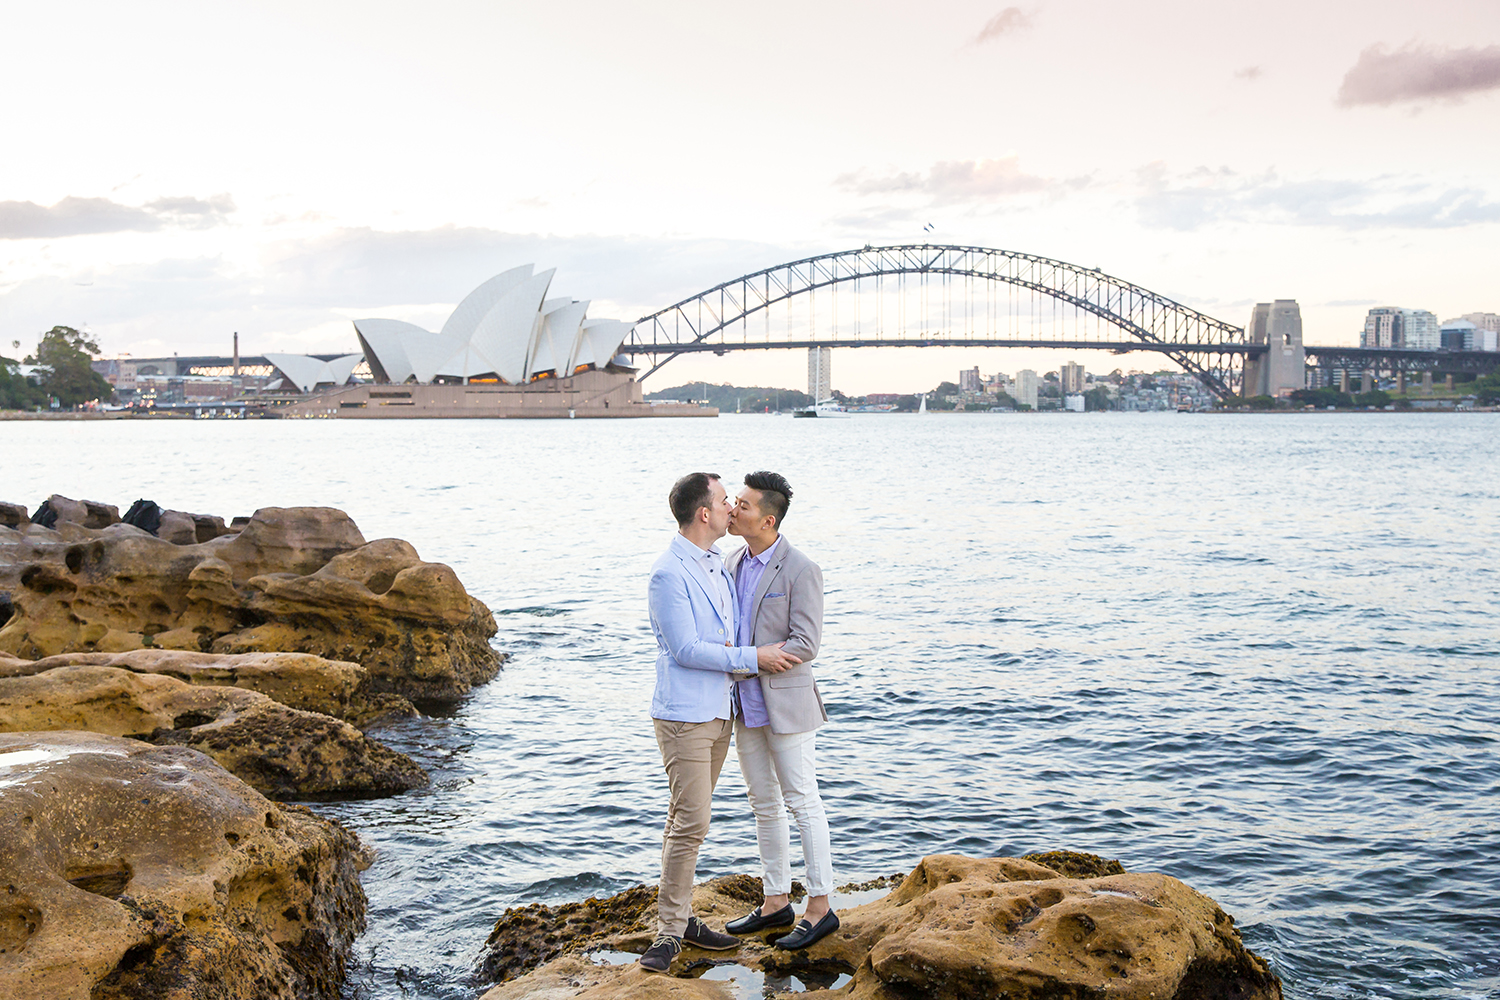 Sydney Gay Wedding Photographer - Jennifer Lam Photography (64).jpg